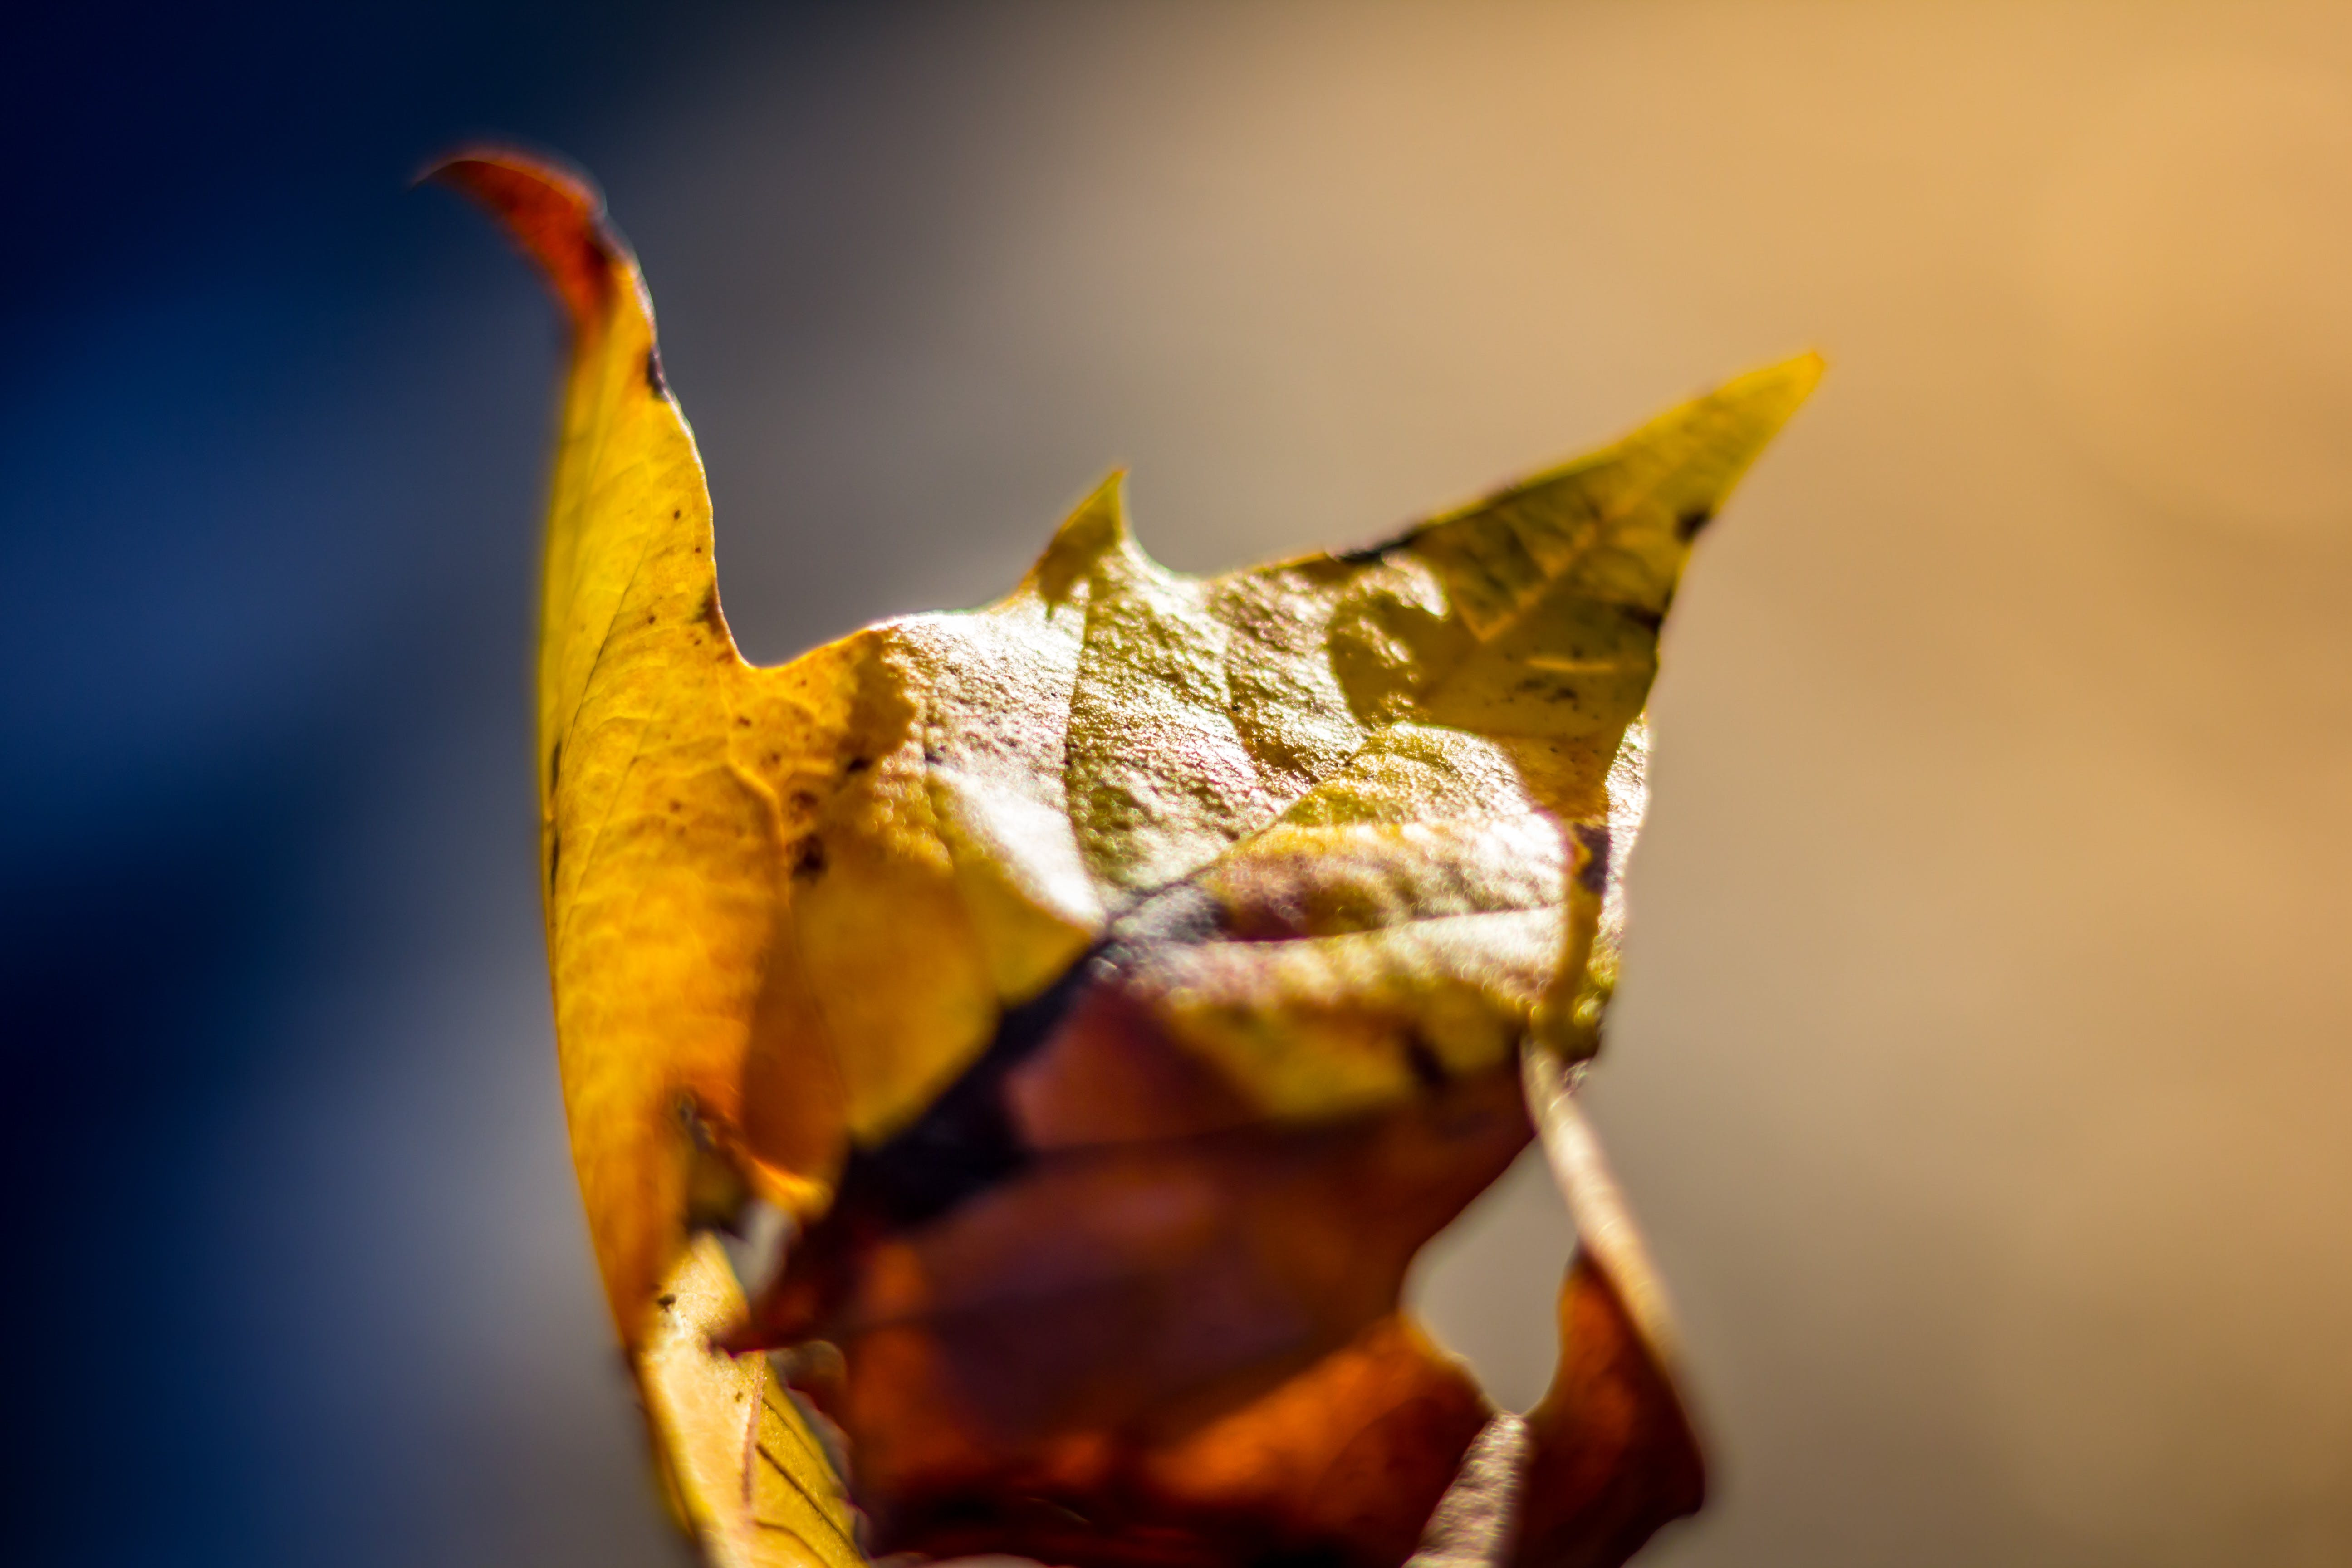 Focus Photography of Brown Leaf